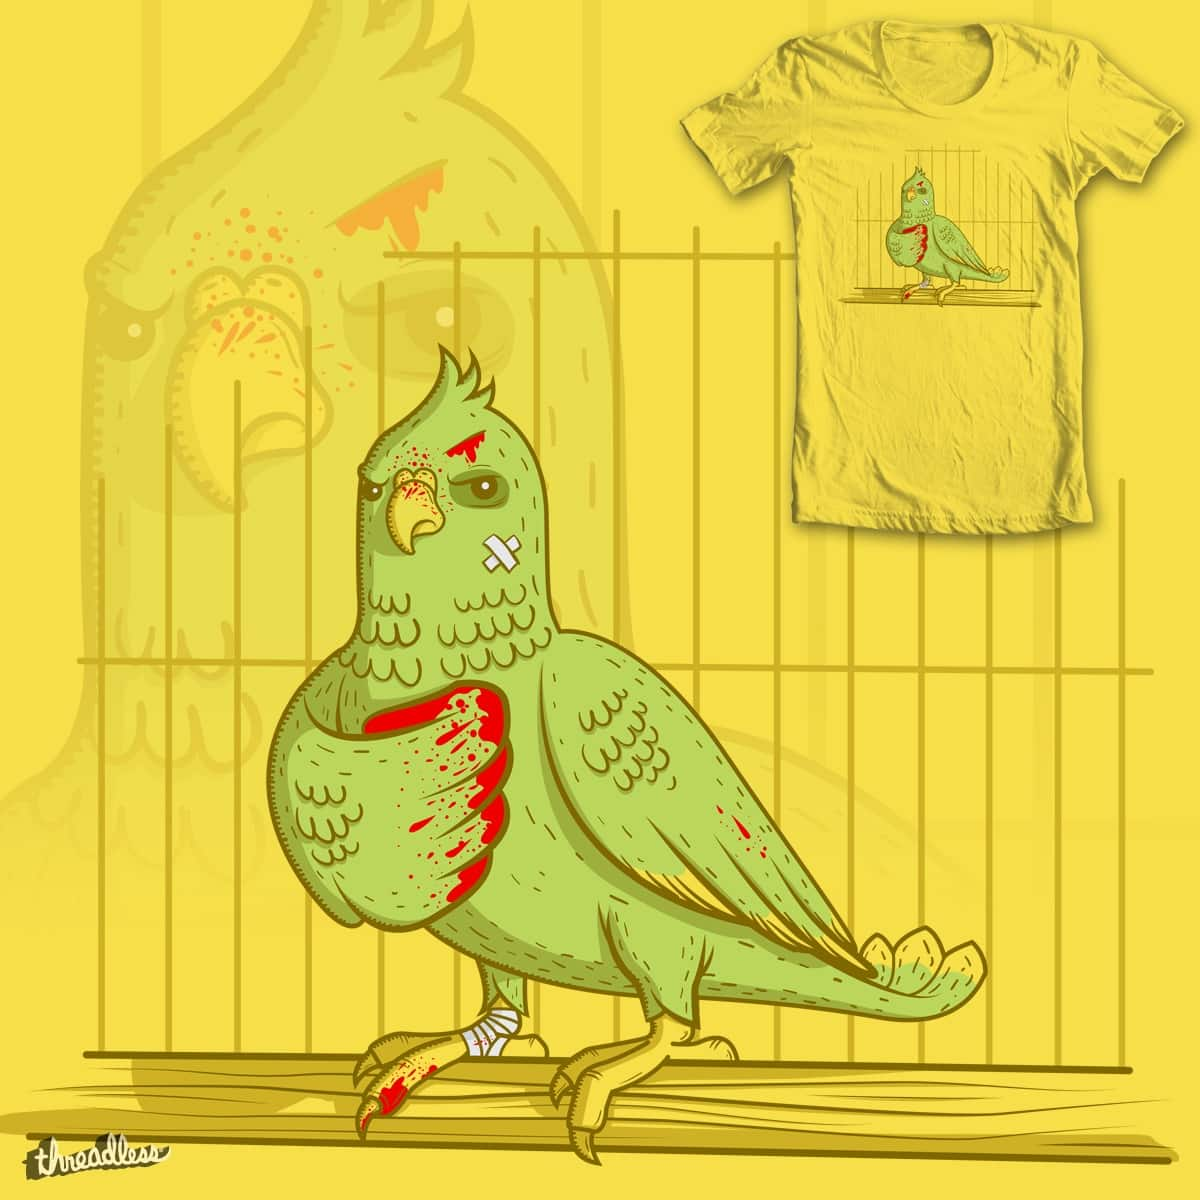 The Ultimate Cage Fighter by mip1980 on Threadless